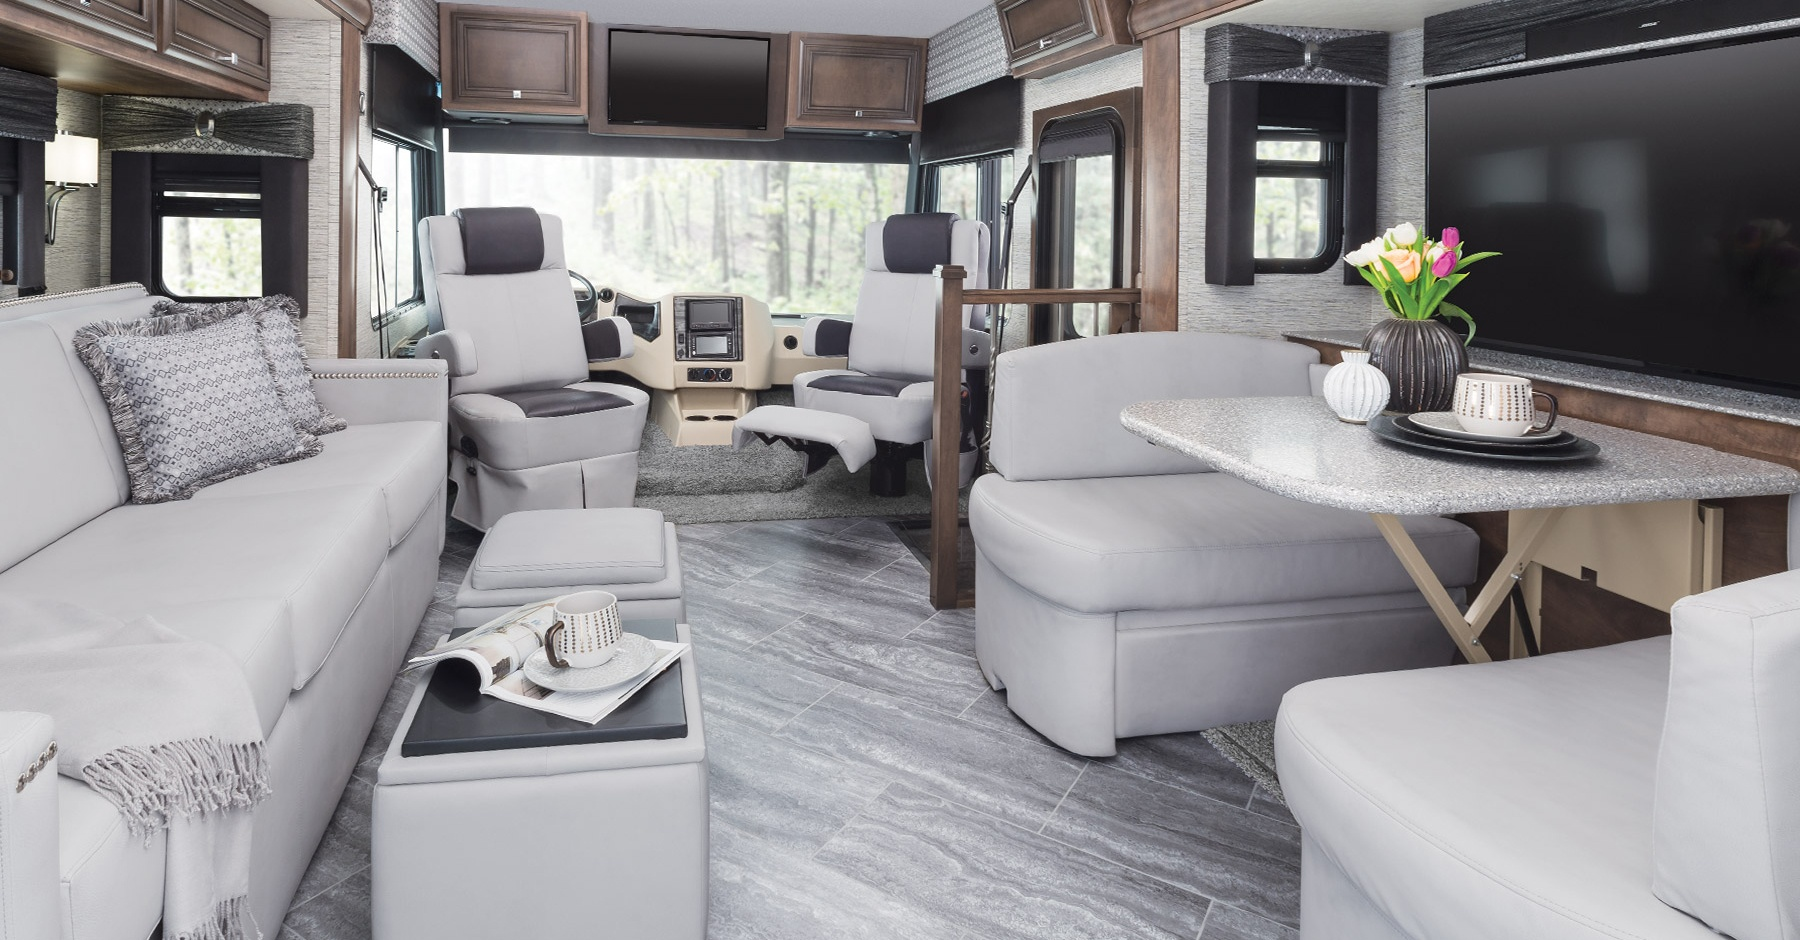 Six 2019 motorhomes, including Tiffin Open Road Allegro, Newmar Bay Star, Coachmen Leprechaun, Winnebago Fuse, Pleasure-Way Lexor TS, Midwest Automotive Designs Weekender